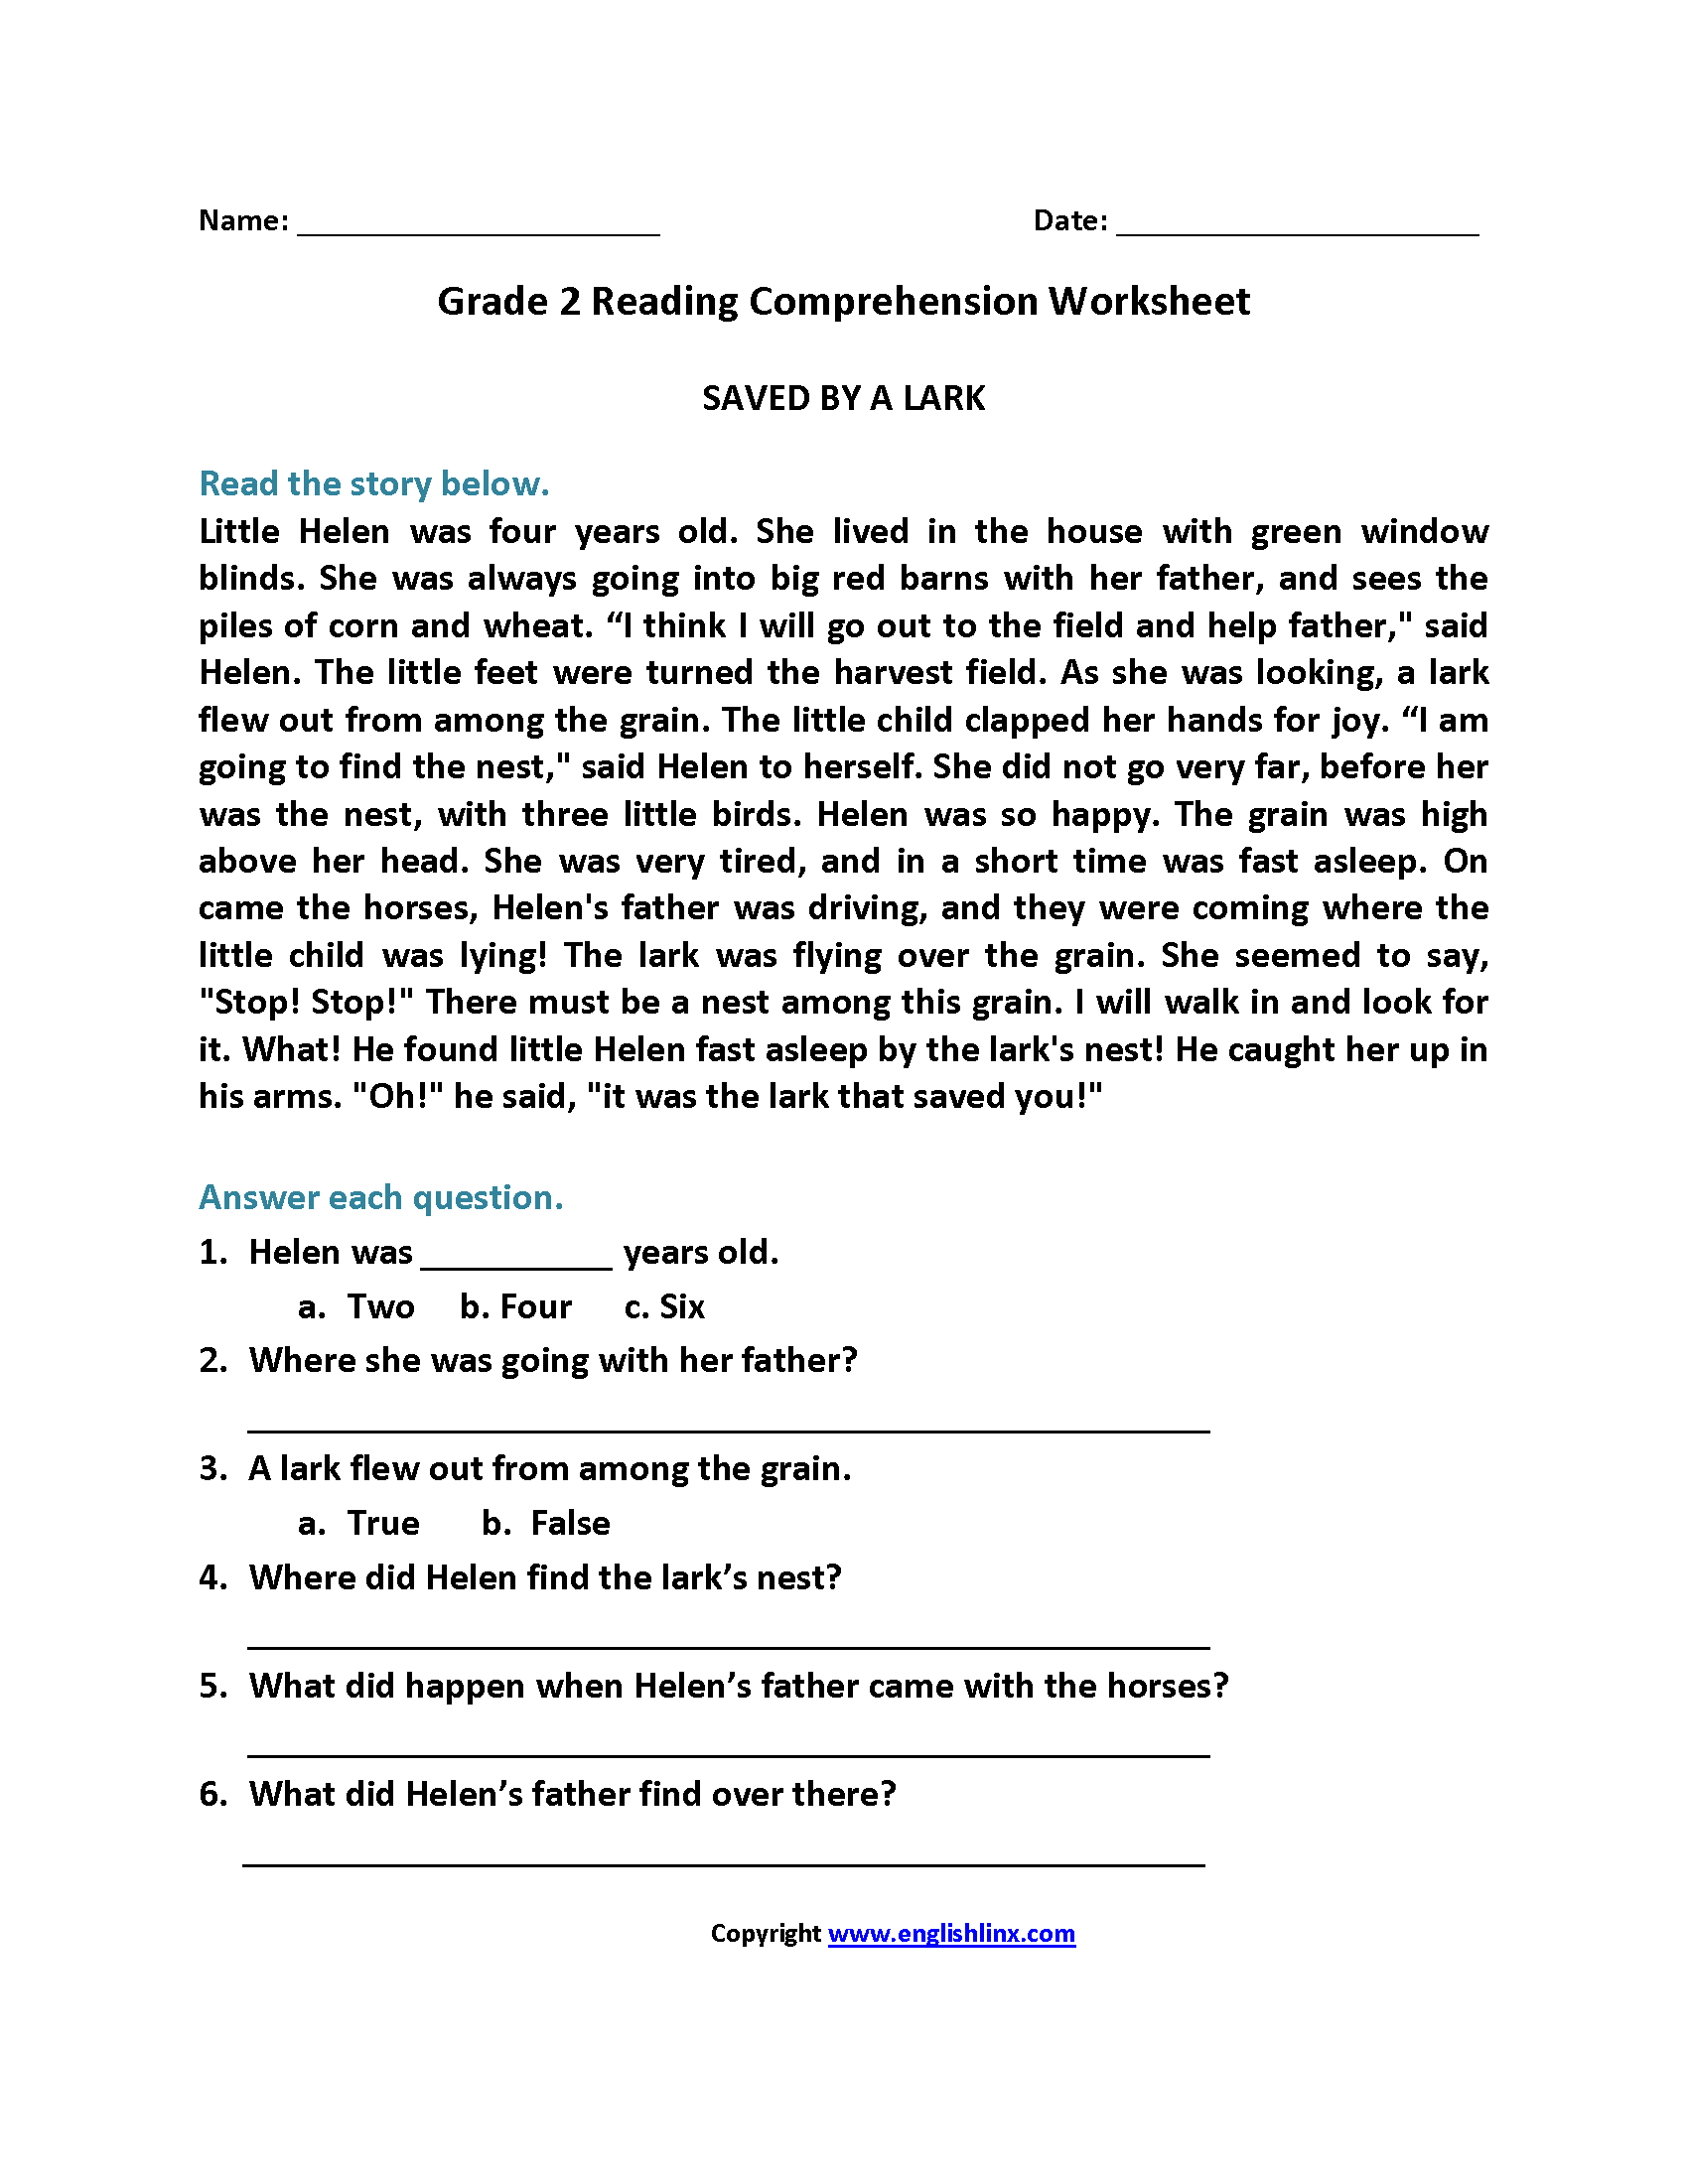 Saved By Lark Second Grade Reading Worksheets